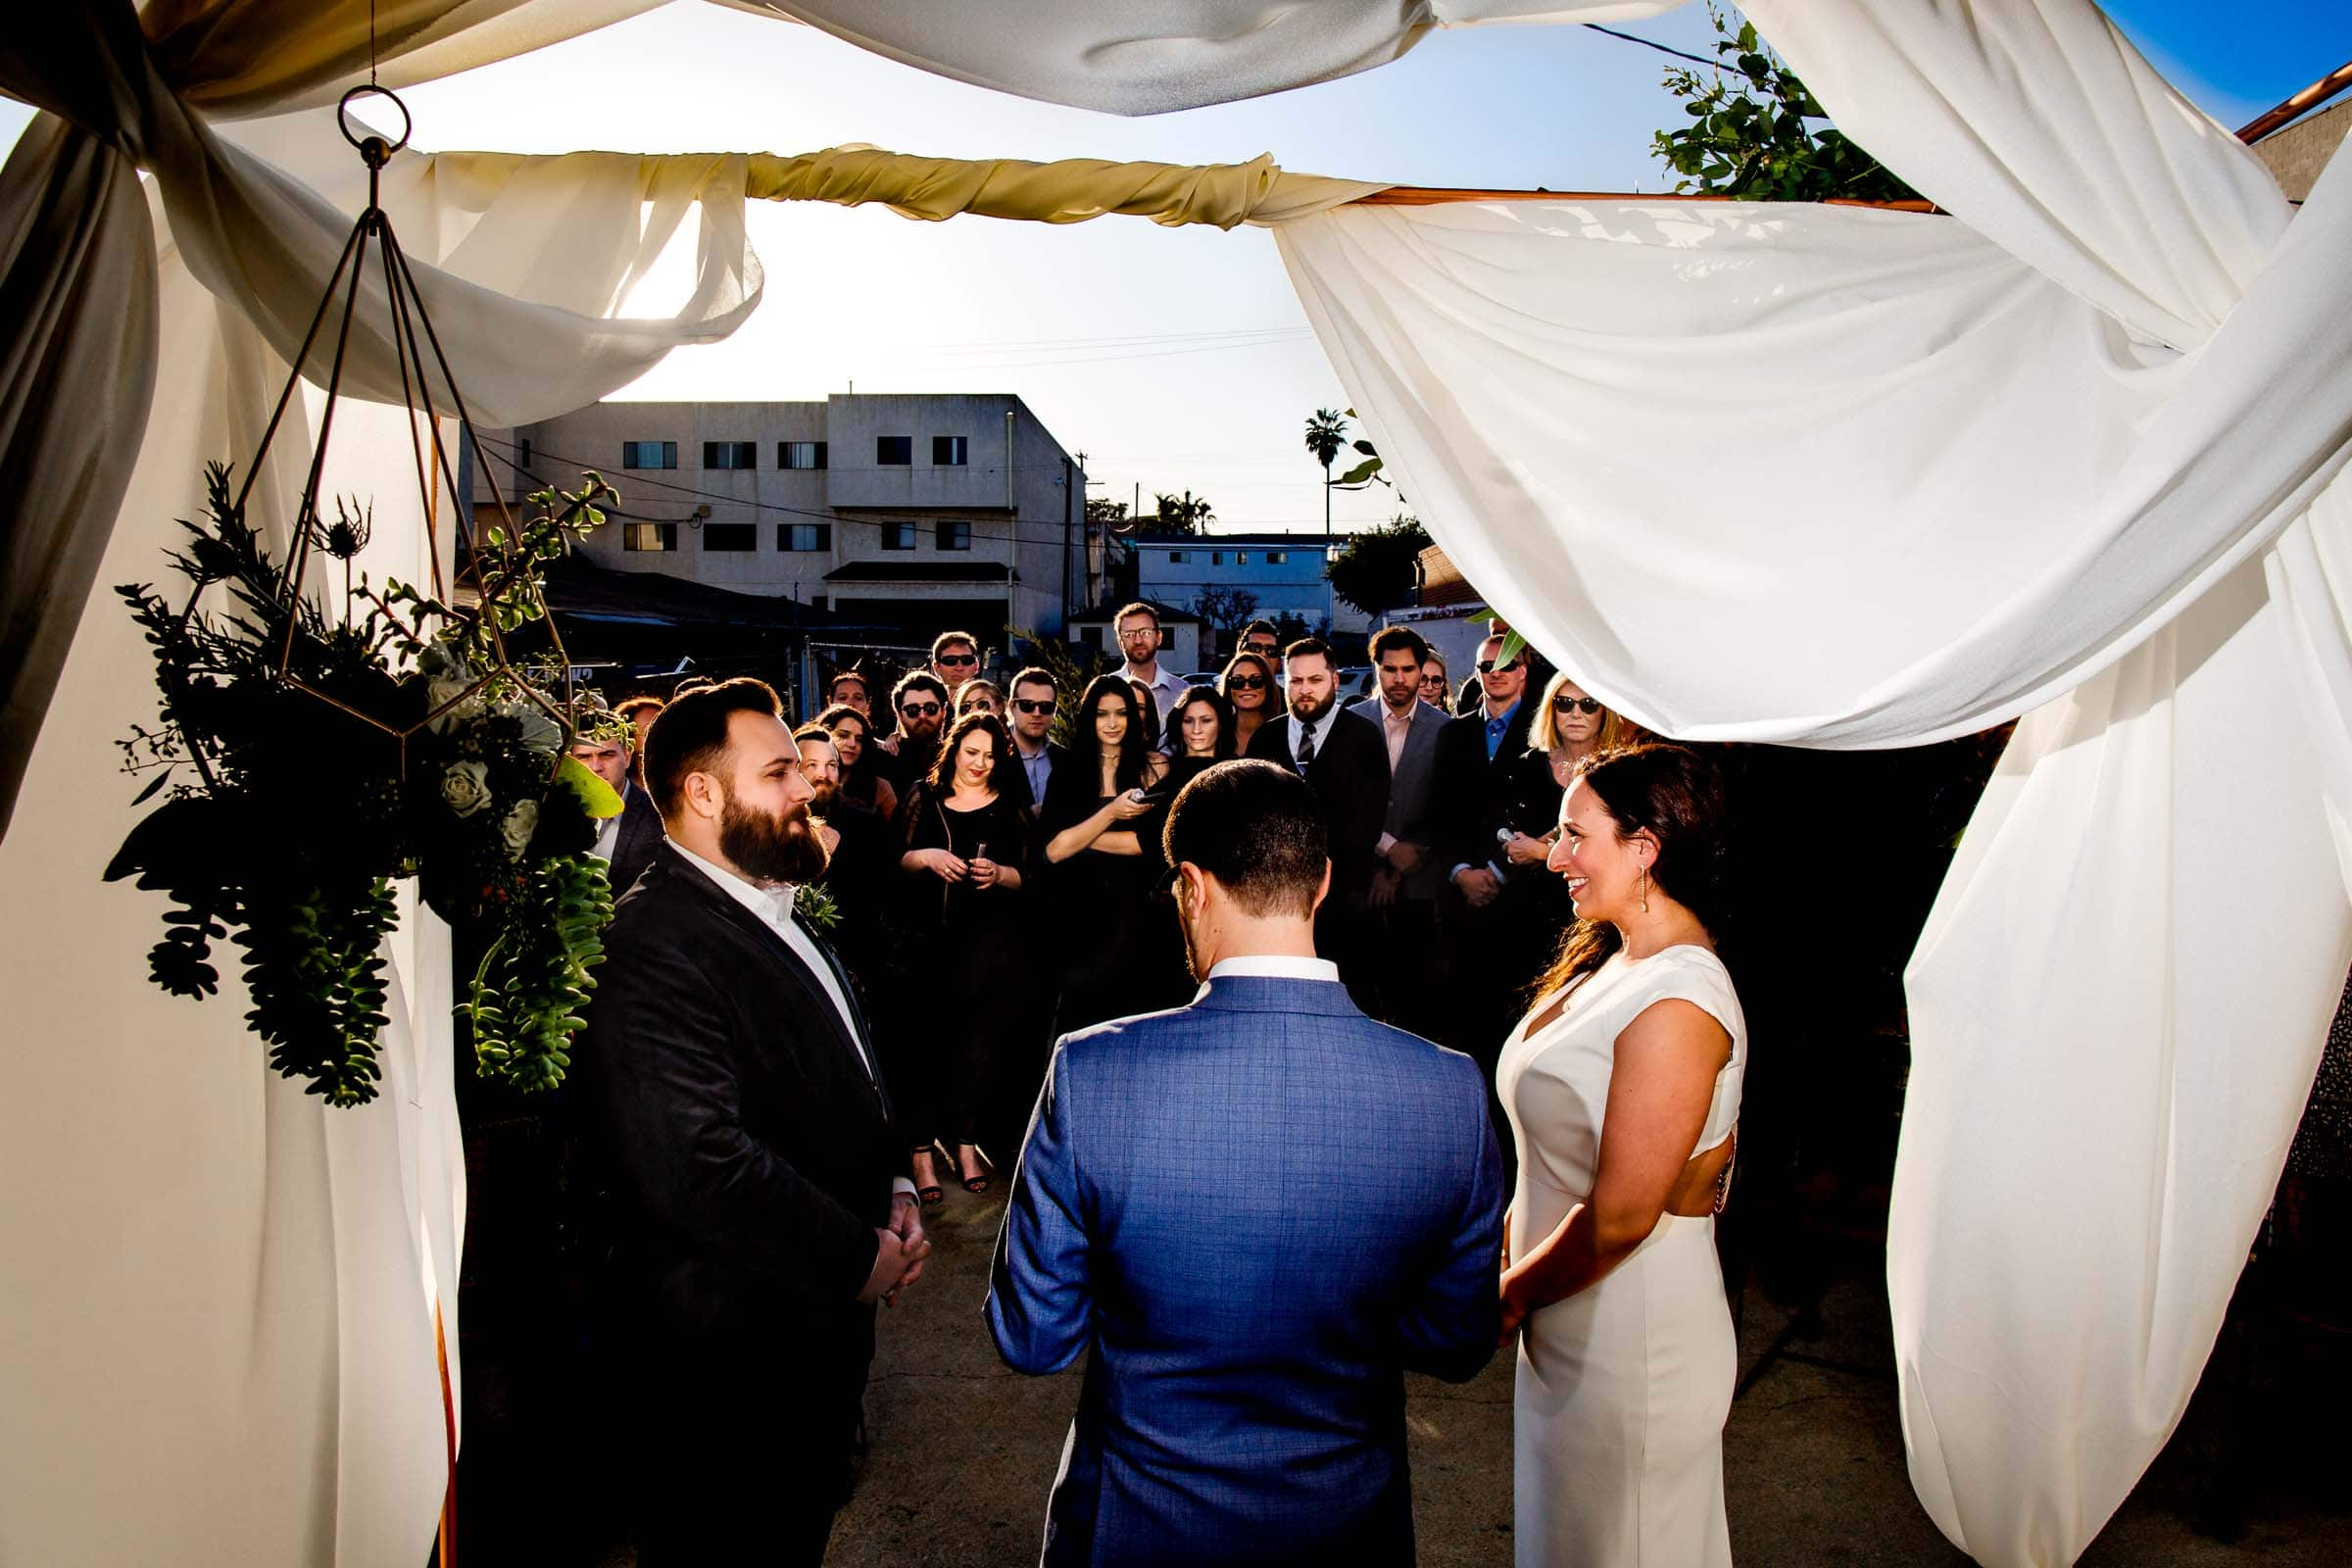 Bride and groom exchanging vows during their Los Angeles Wedding ceremony with family and friends all surrounding them.